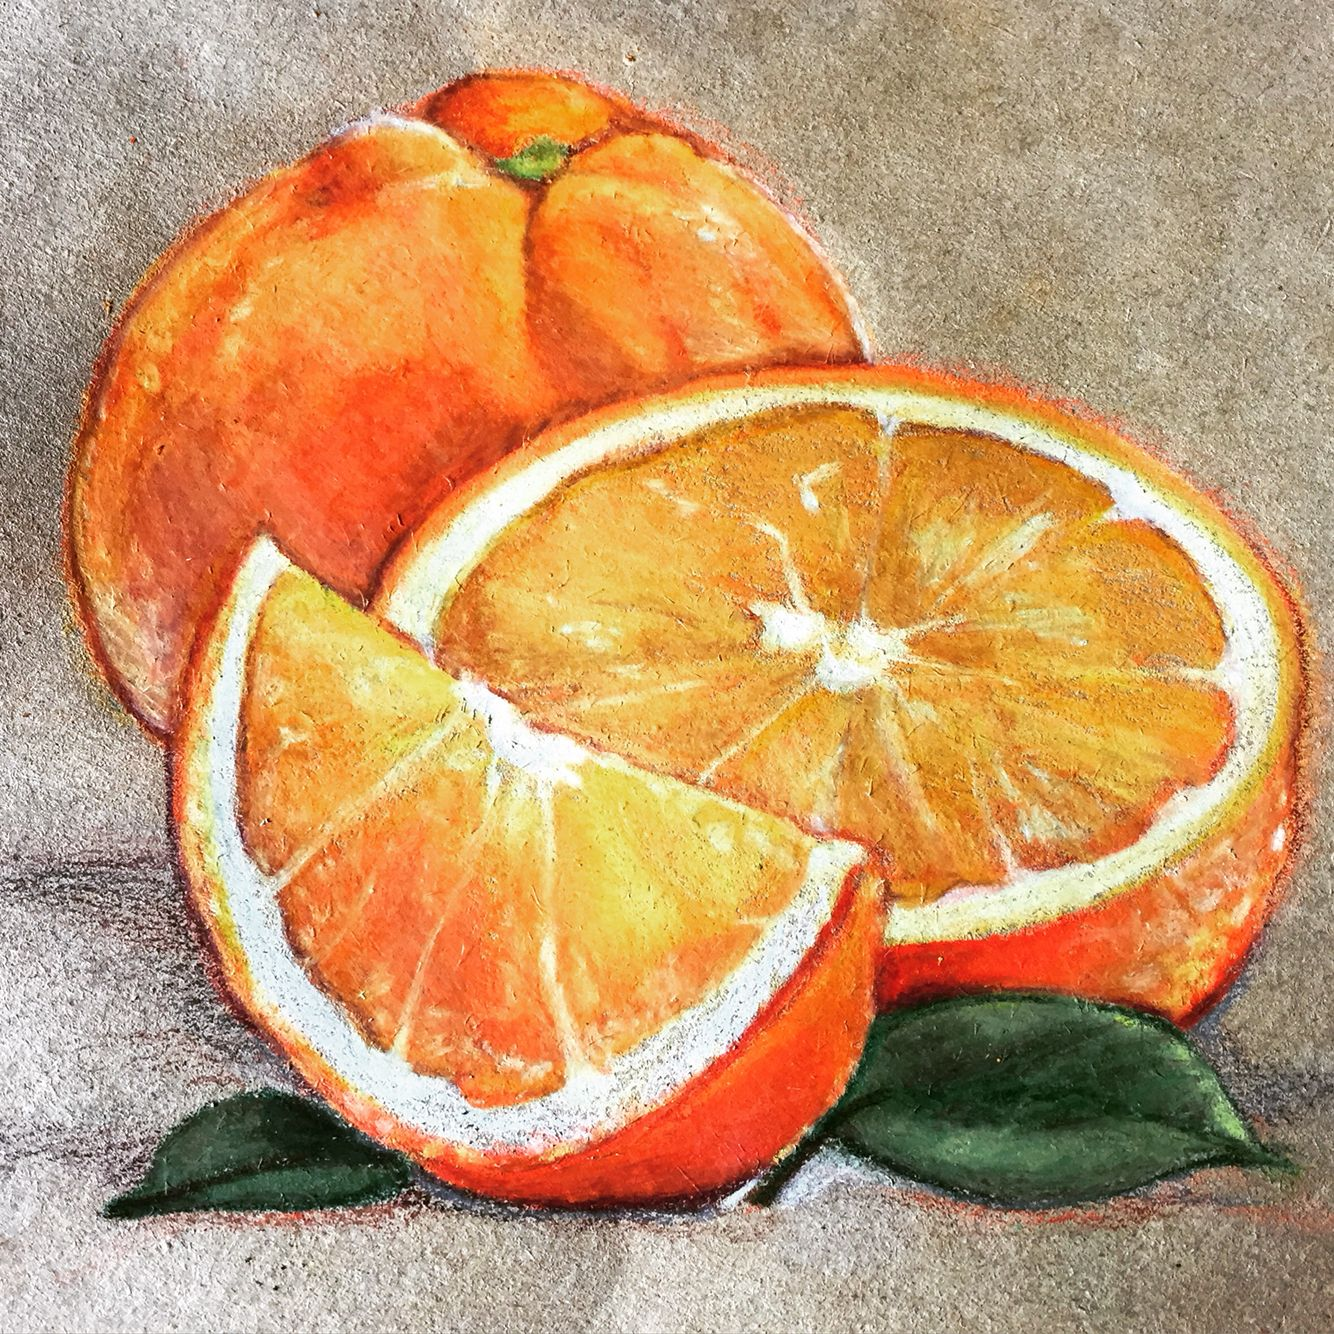 Orange Still Life 7x7 Inches 2015 Watercolor Paintings Easy